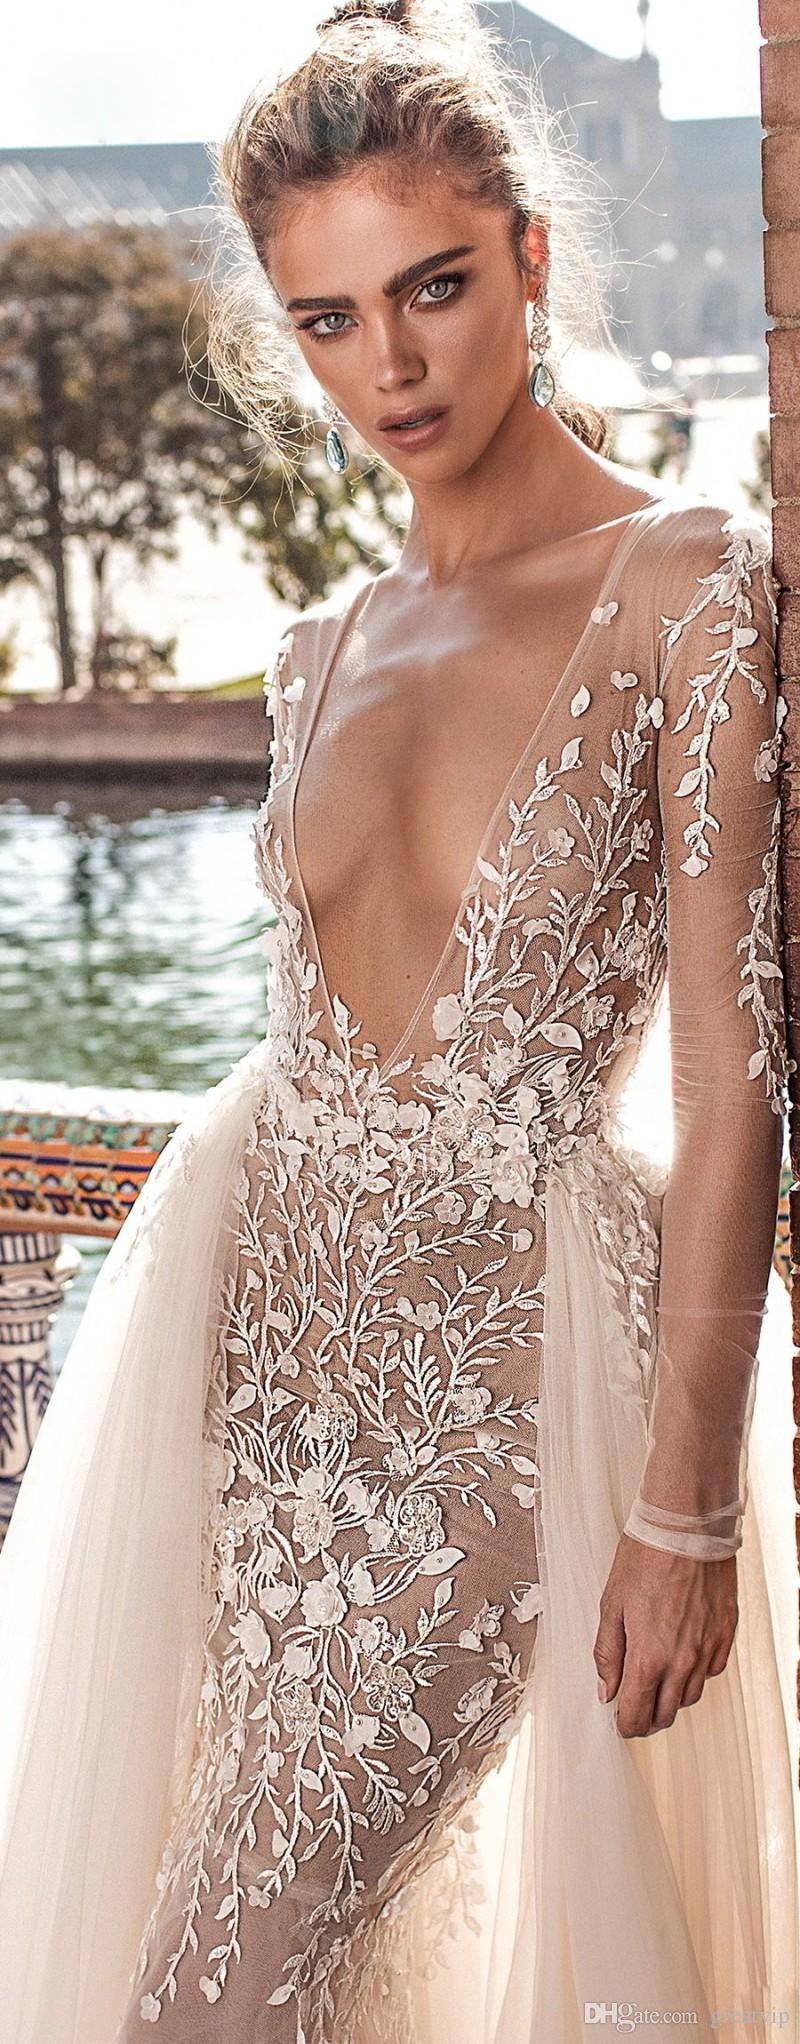 Pizzo applique treno staccabile abiti con Berta sposa Mermaid profondo scollo a V Beach Wedding Gowns sweep treno lungo nuziale sexy manica